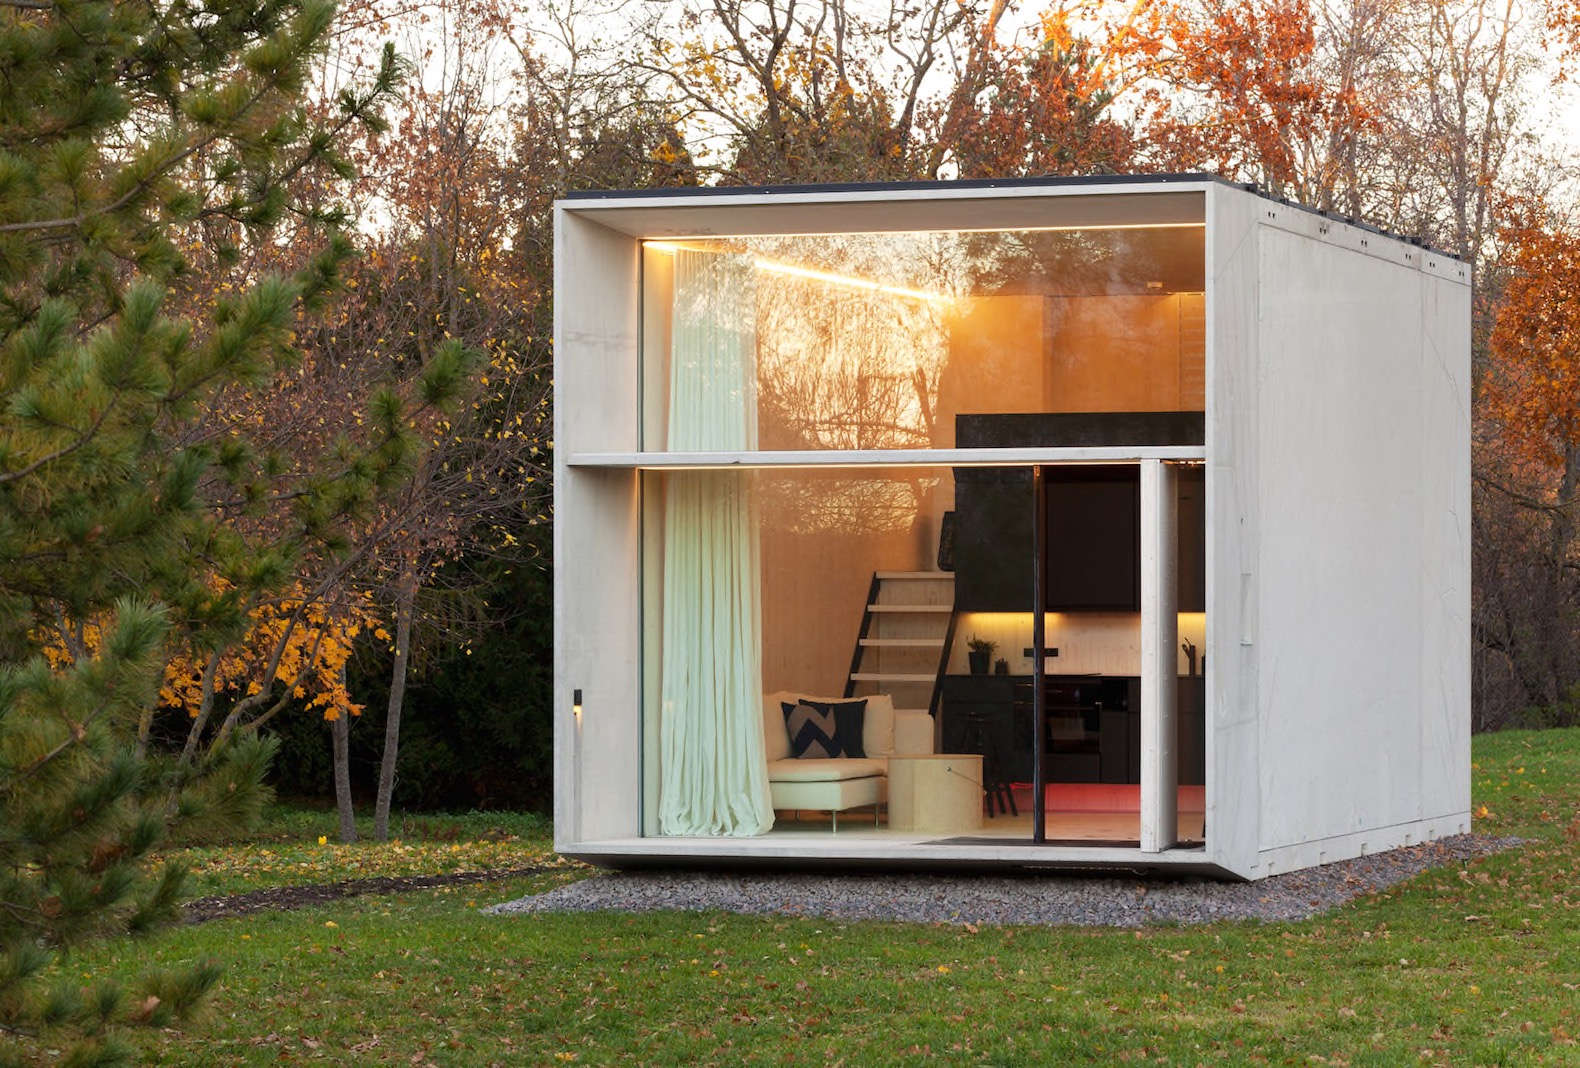 KODA Is A Tiny Solar Powered House That Can Move With Its Owners